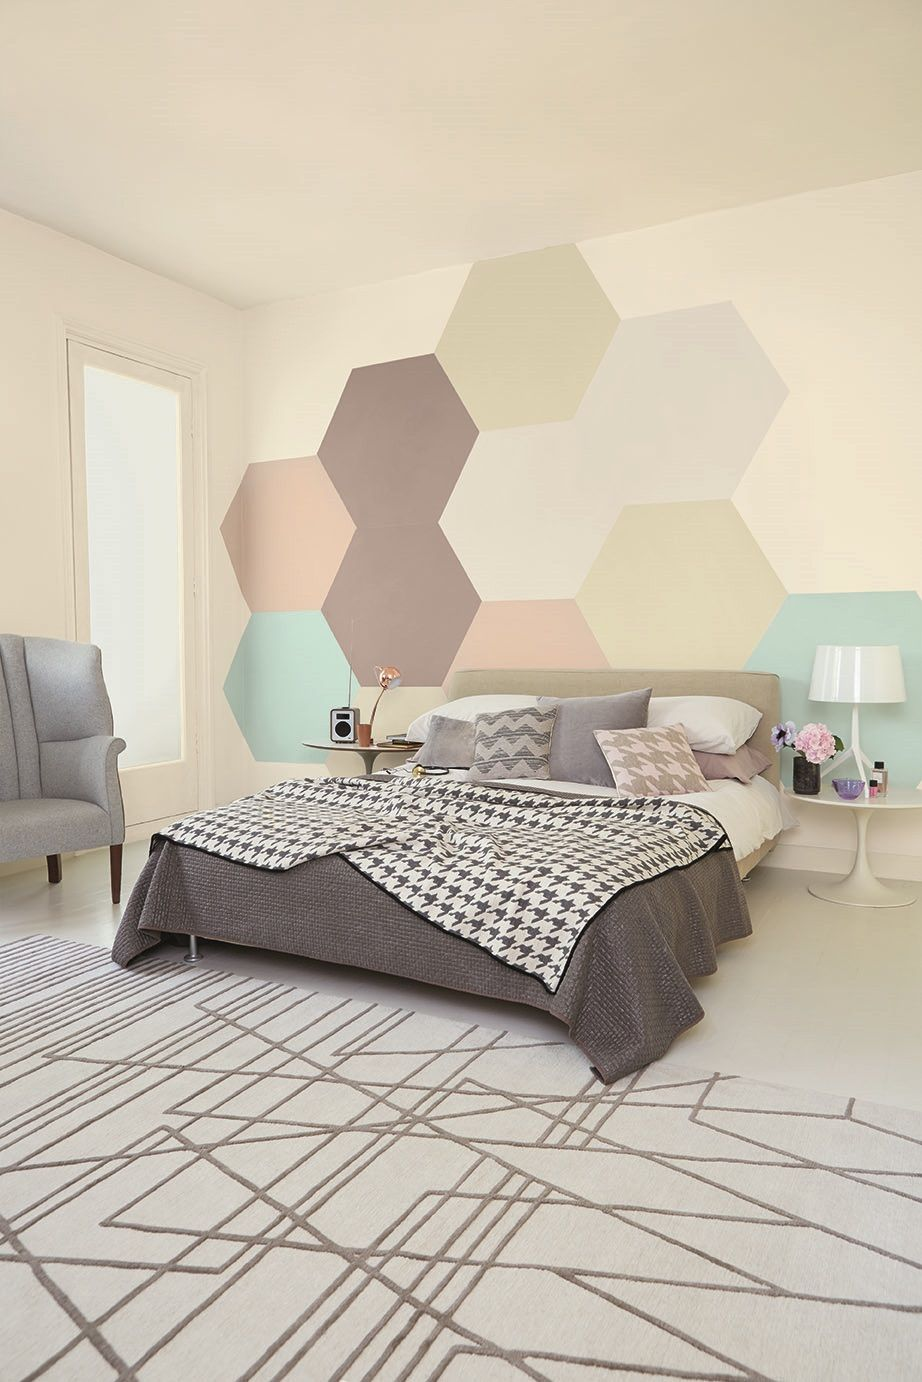 Dress Up Your Wall With These 7 Paint Patterns Room Decor